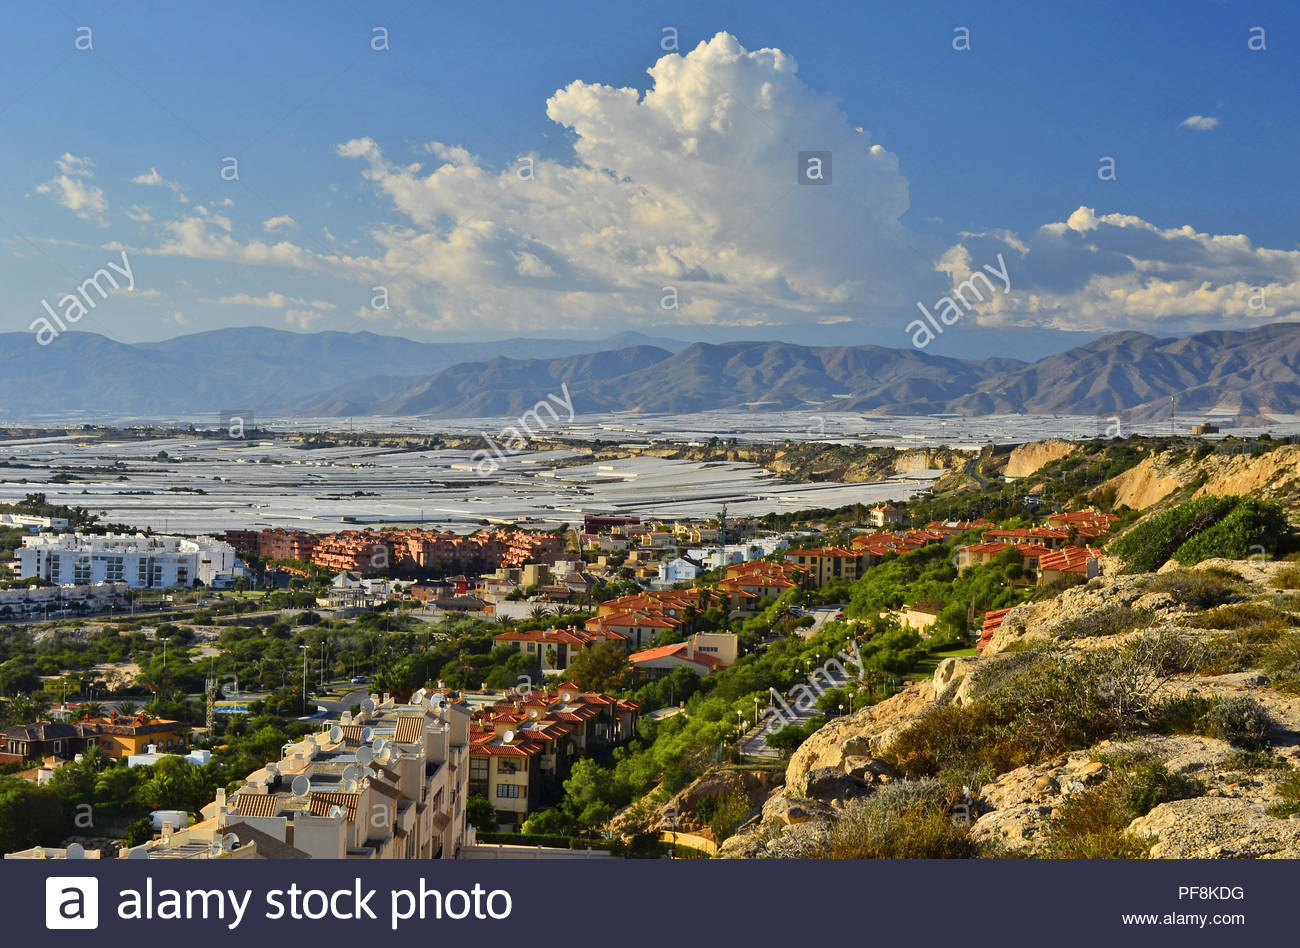 Two main industries of Almeria Southern Spain - tourism and agriculture. Green valley with hotel apartments and field of greenhouses in background. - Stock Image